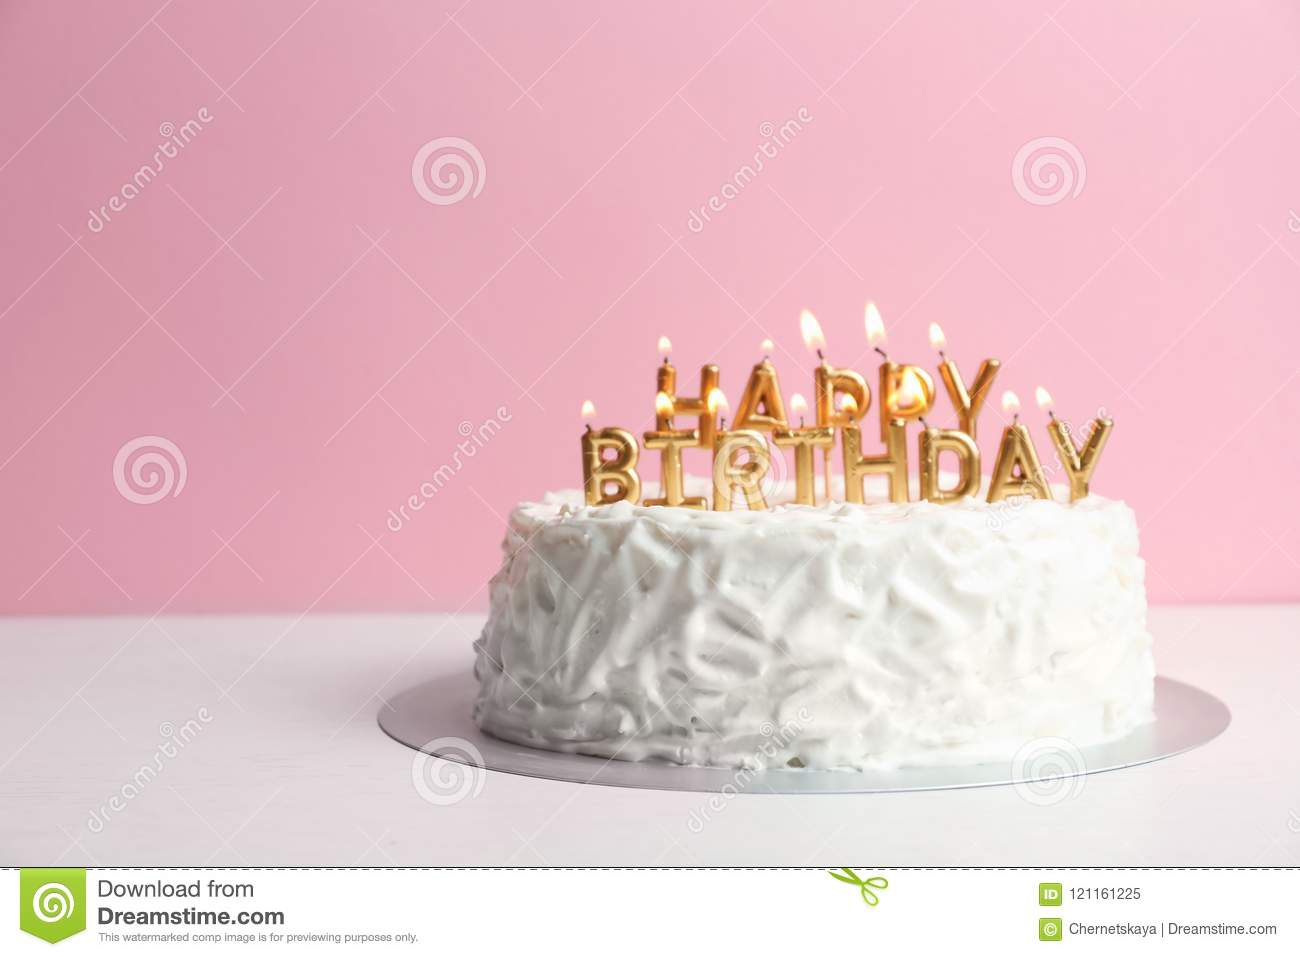 Birthday Cake With Candles On Table Stock Image Image Of Event